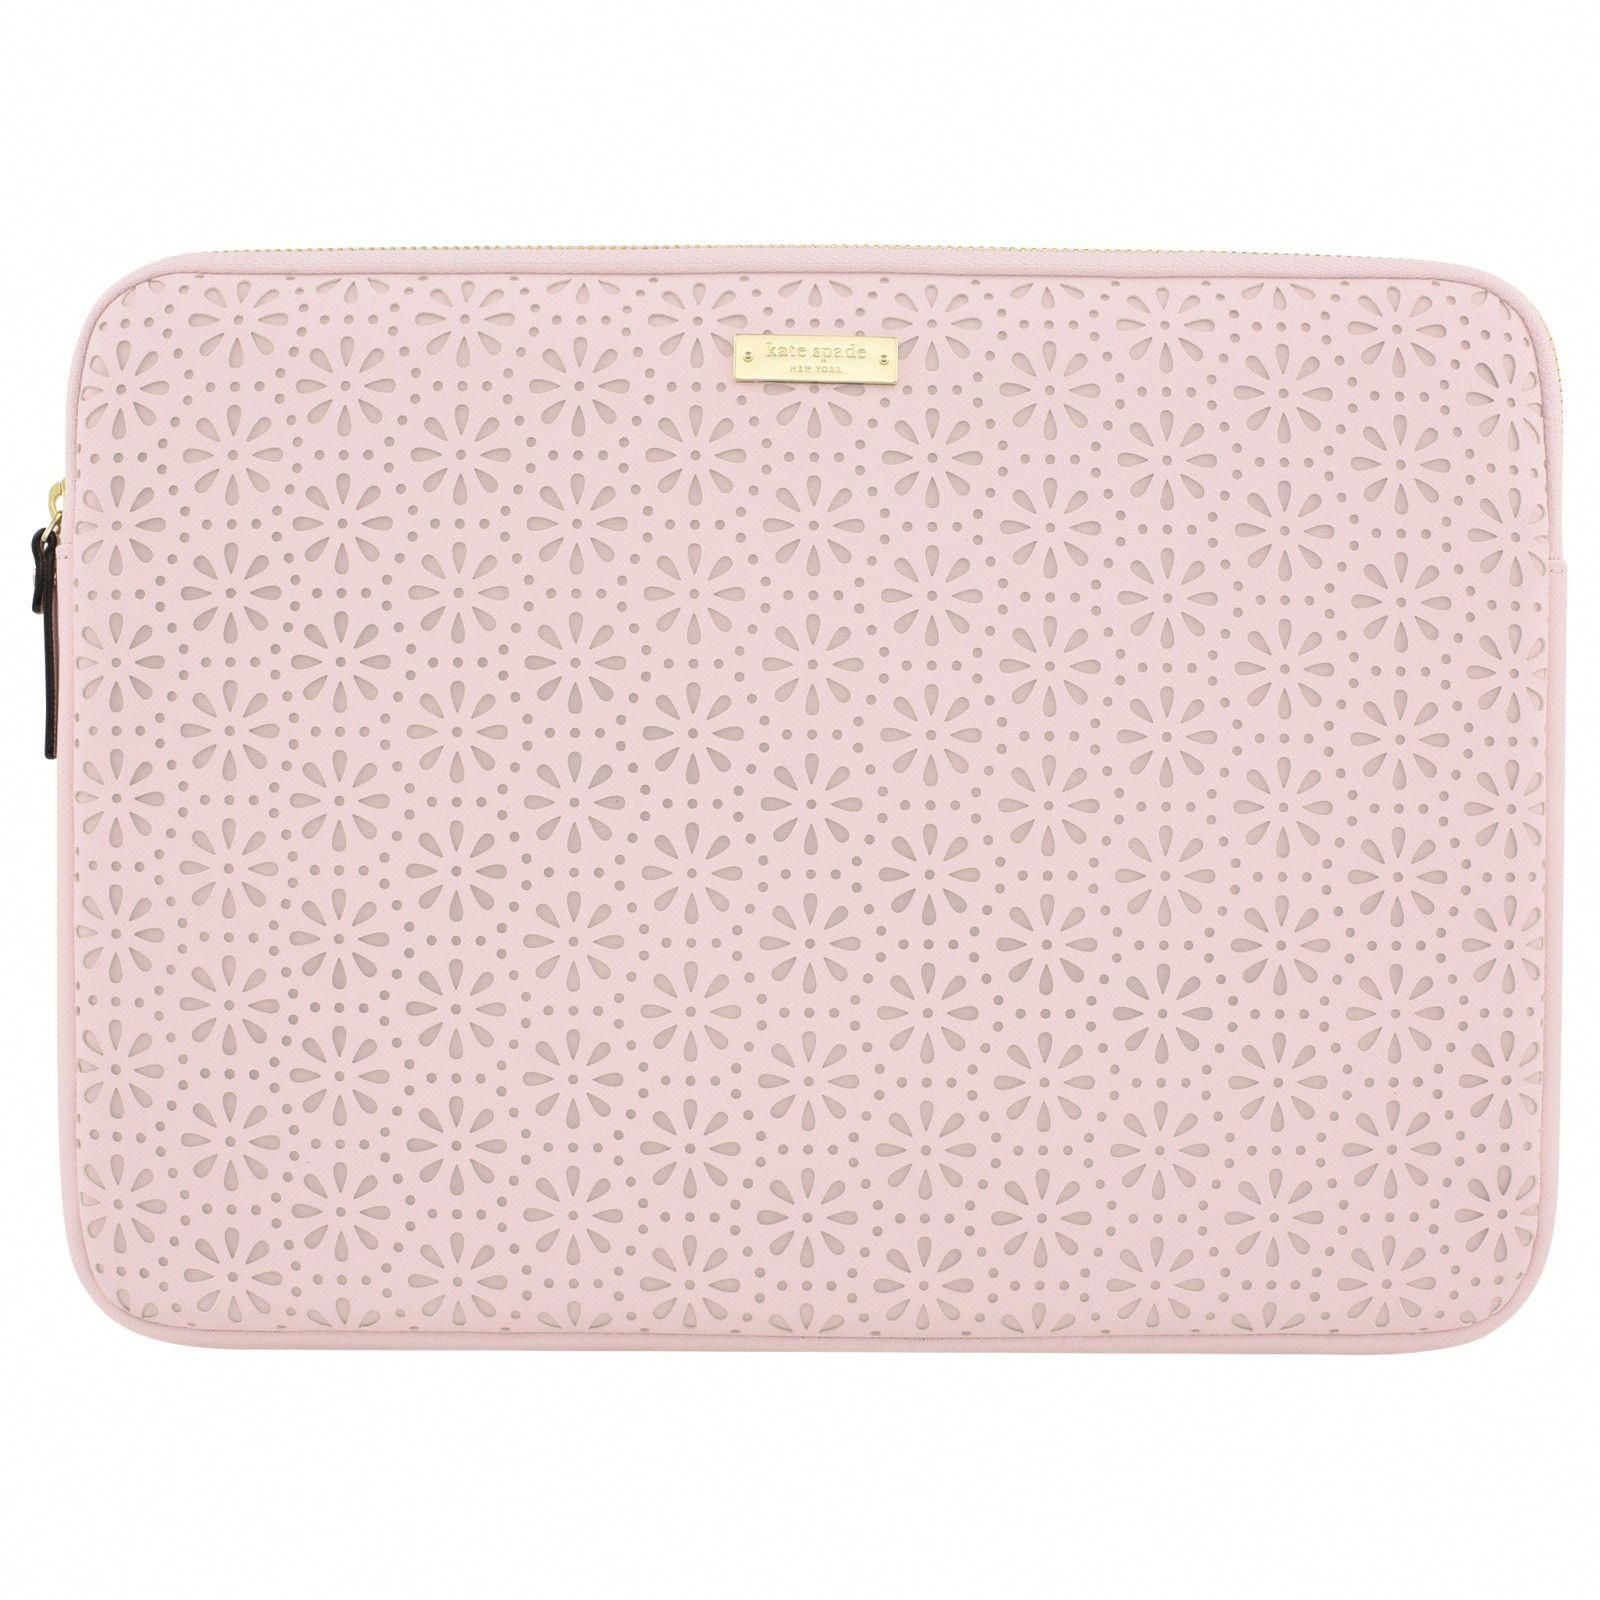 kate spade new york Embossed Sleeve for 13 Laptop on sale